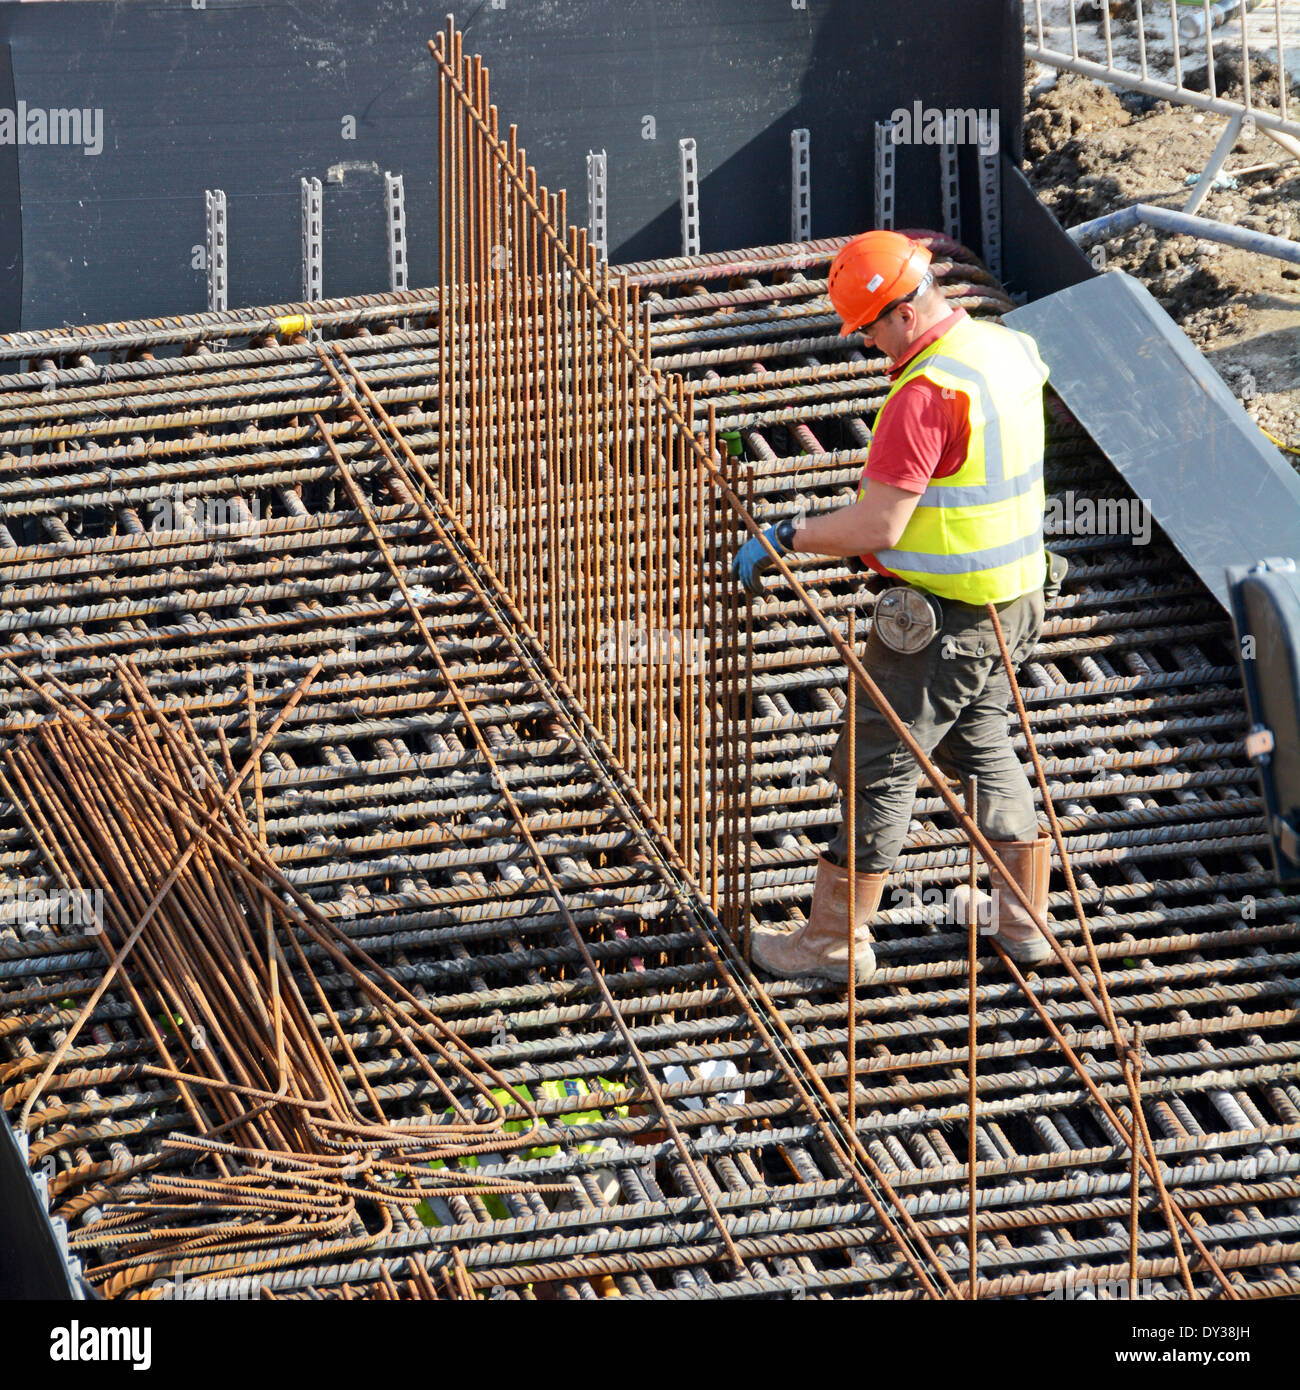 Steelfixer tying steel reinforcement cage together as part of foundations for new building - Stock Image